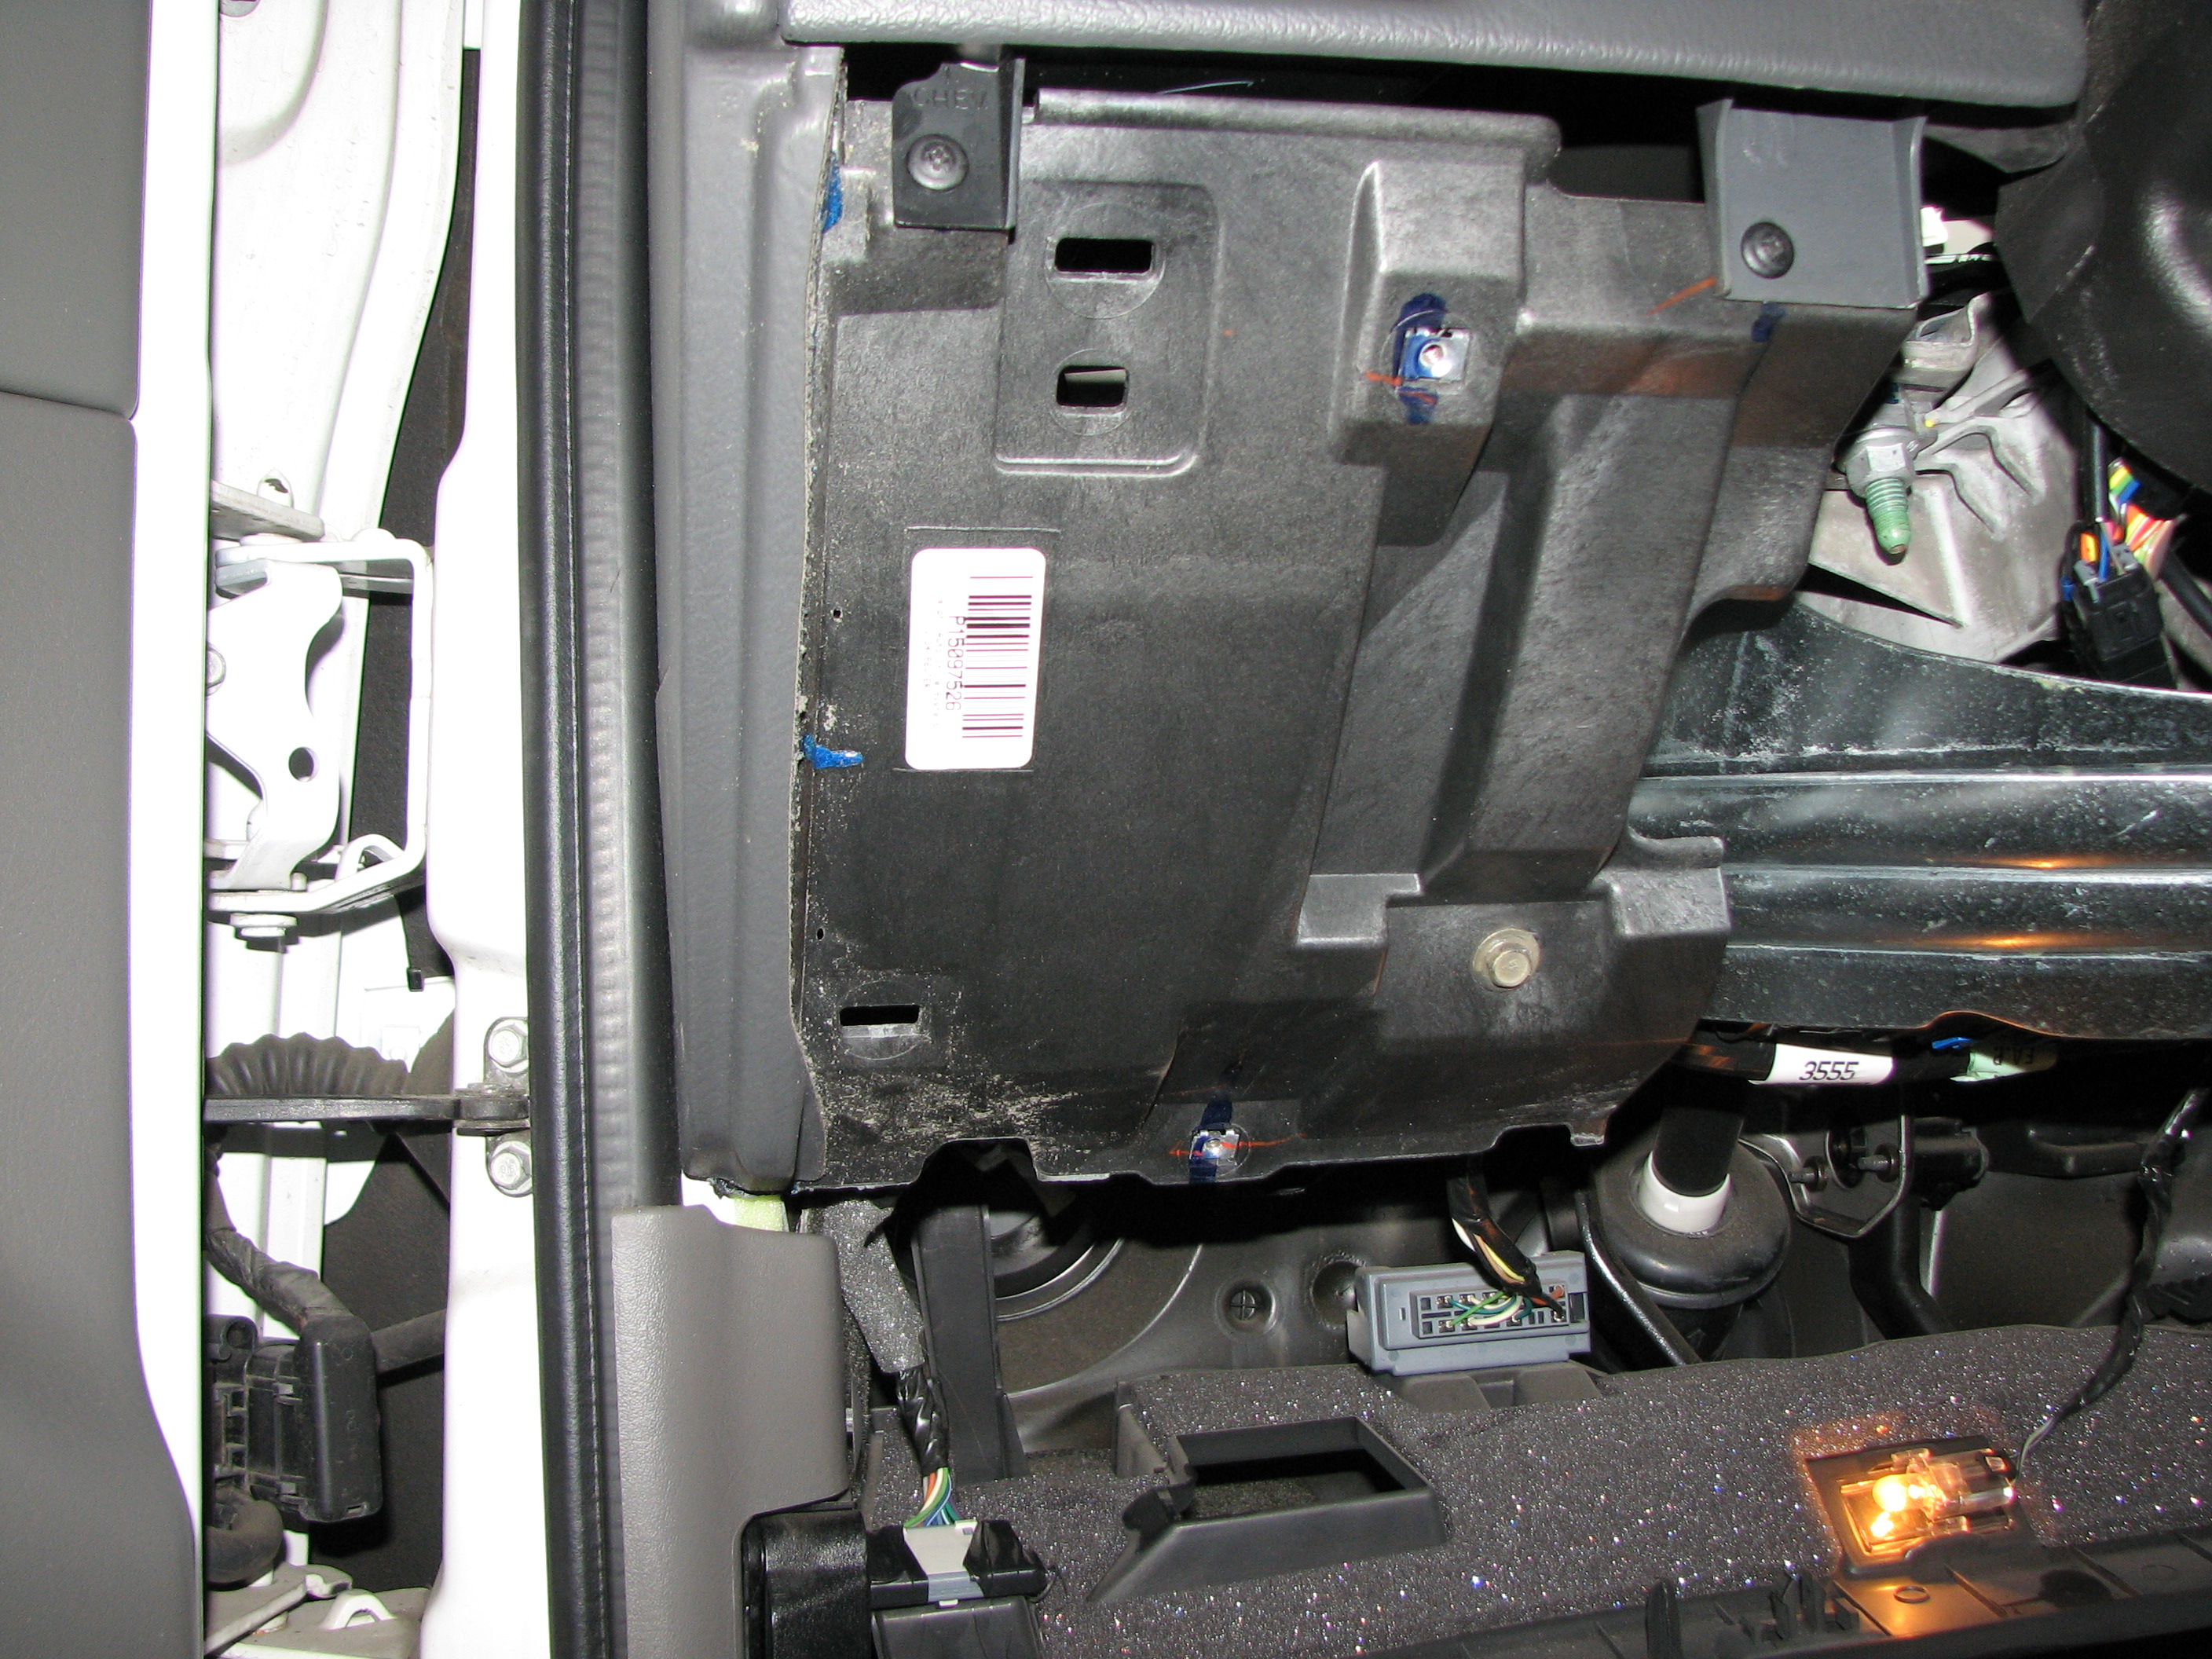 06 Hummer H3 Wiring Diagram furthermore 97 Jeep Grand Cherokee Blower Motor Diagram as well Nissan Altima Wiper Blade Relay Location likewise H3 Blower Motor Resistor Location also 2003 Mercury Grand Marquis Blower Motor Resistor Location. on hummer h2 blower motor resistor replacement